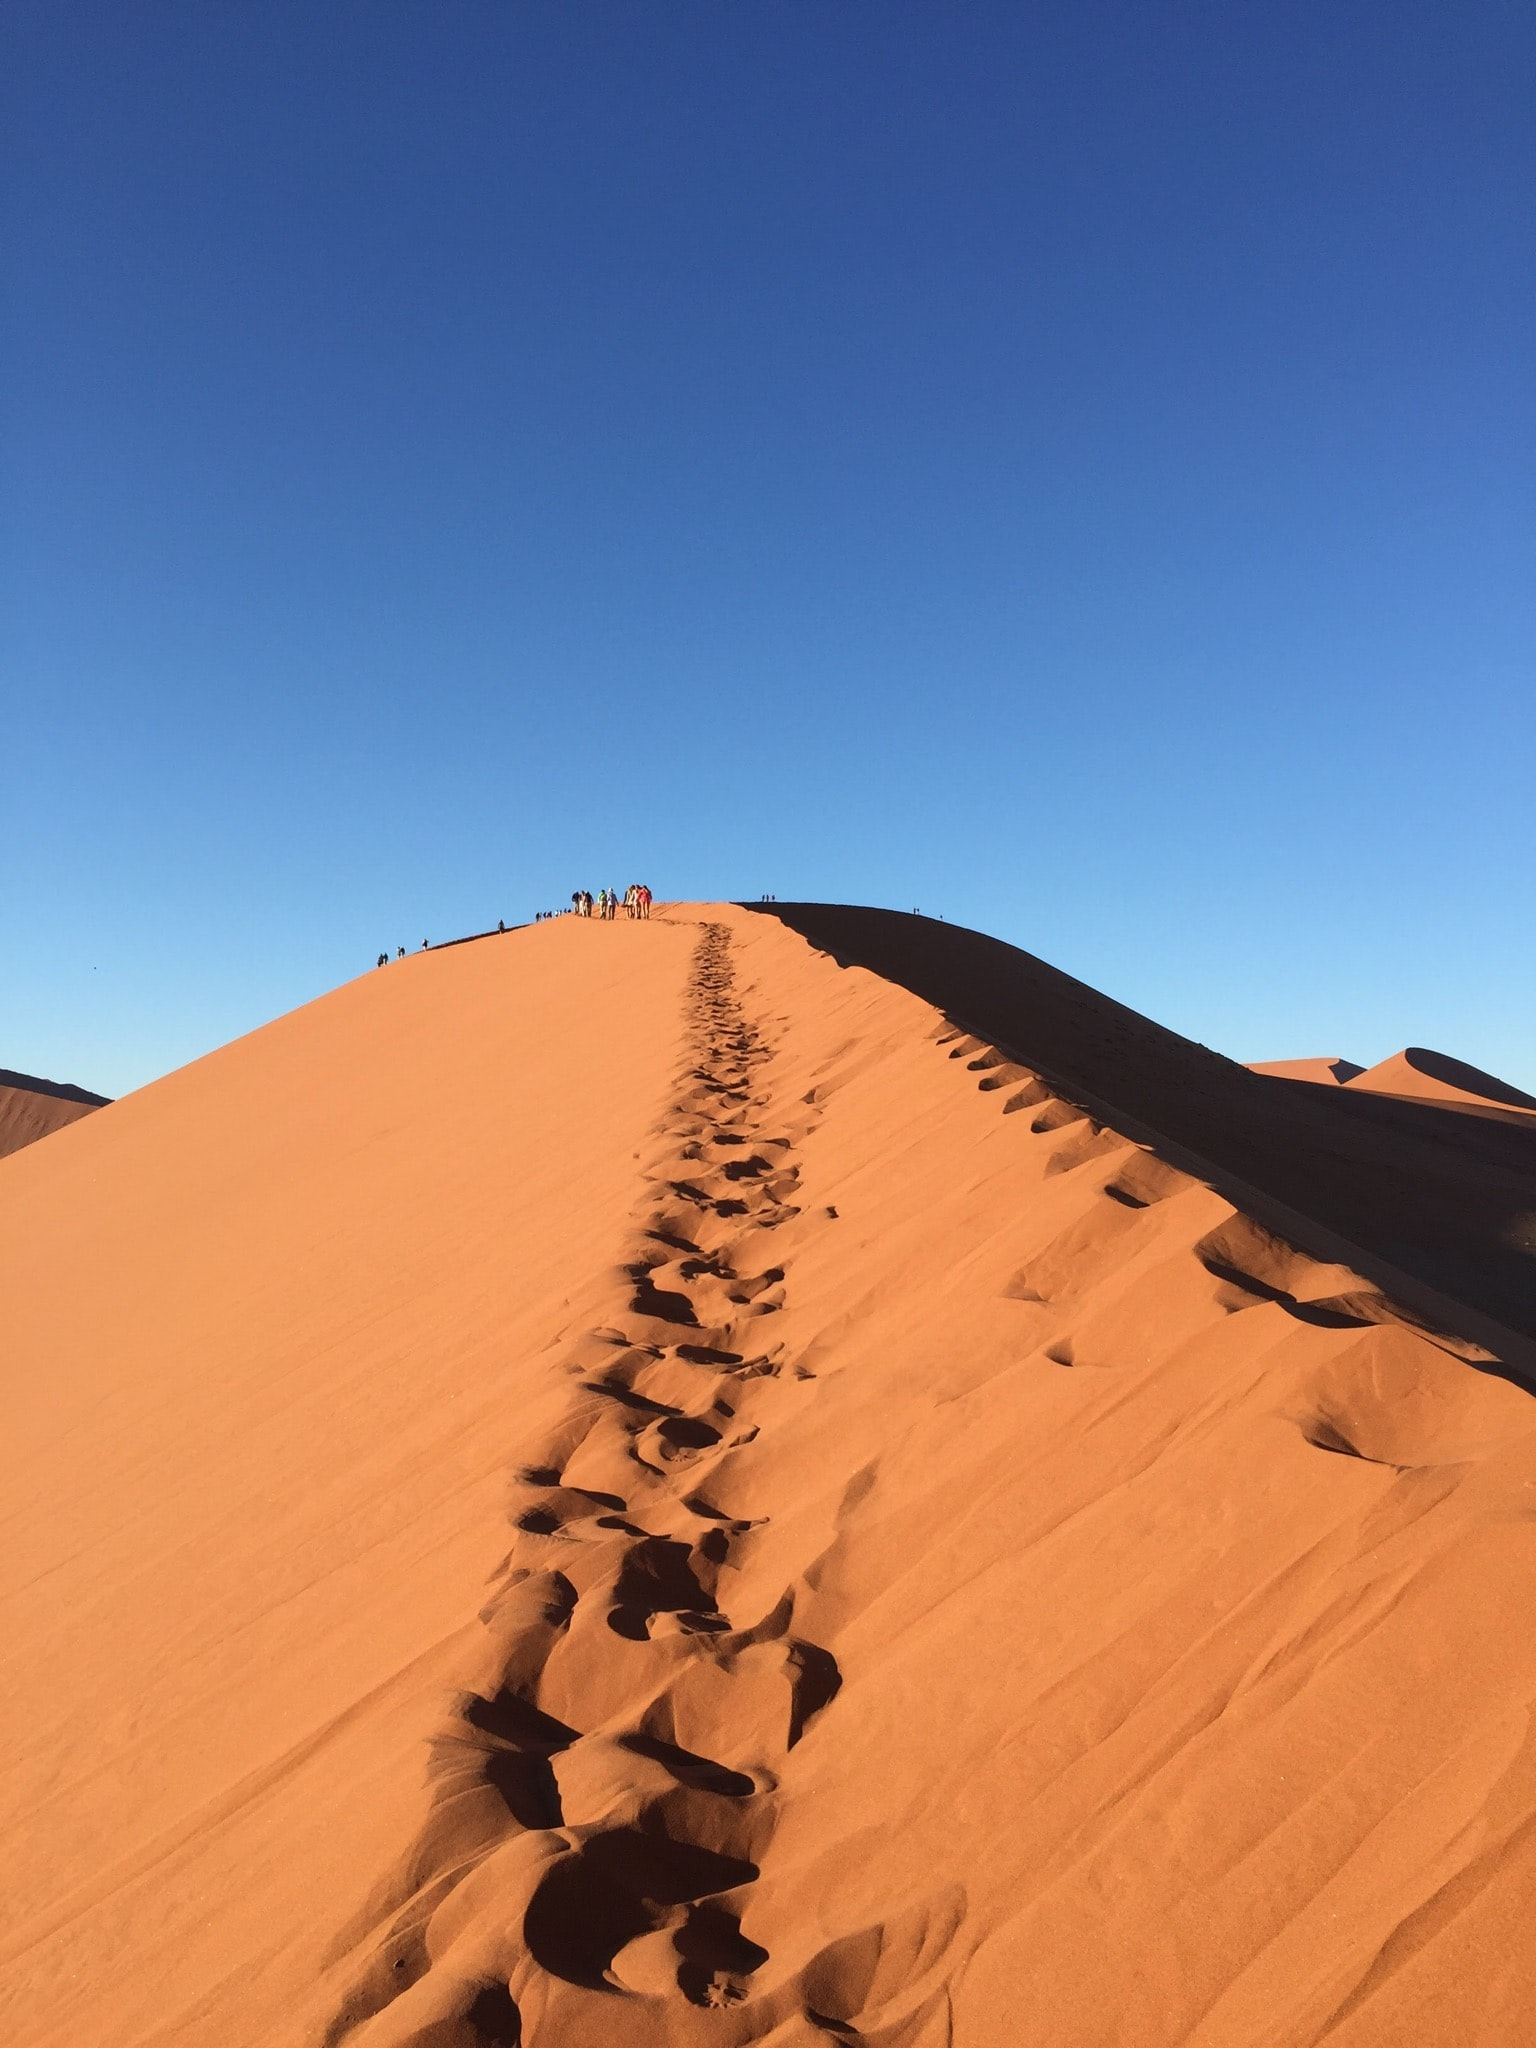 photo of foot prints on desert hill during daytime